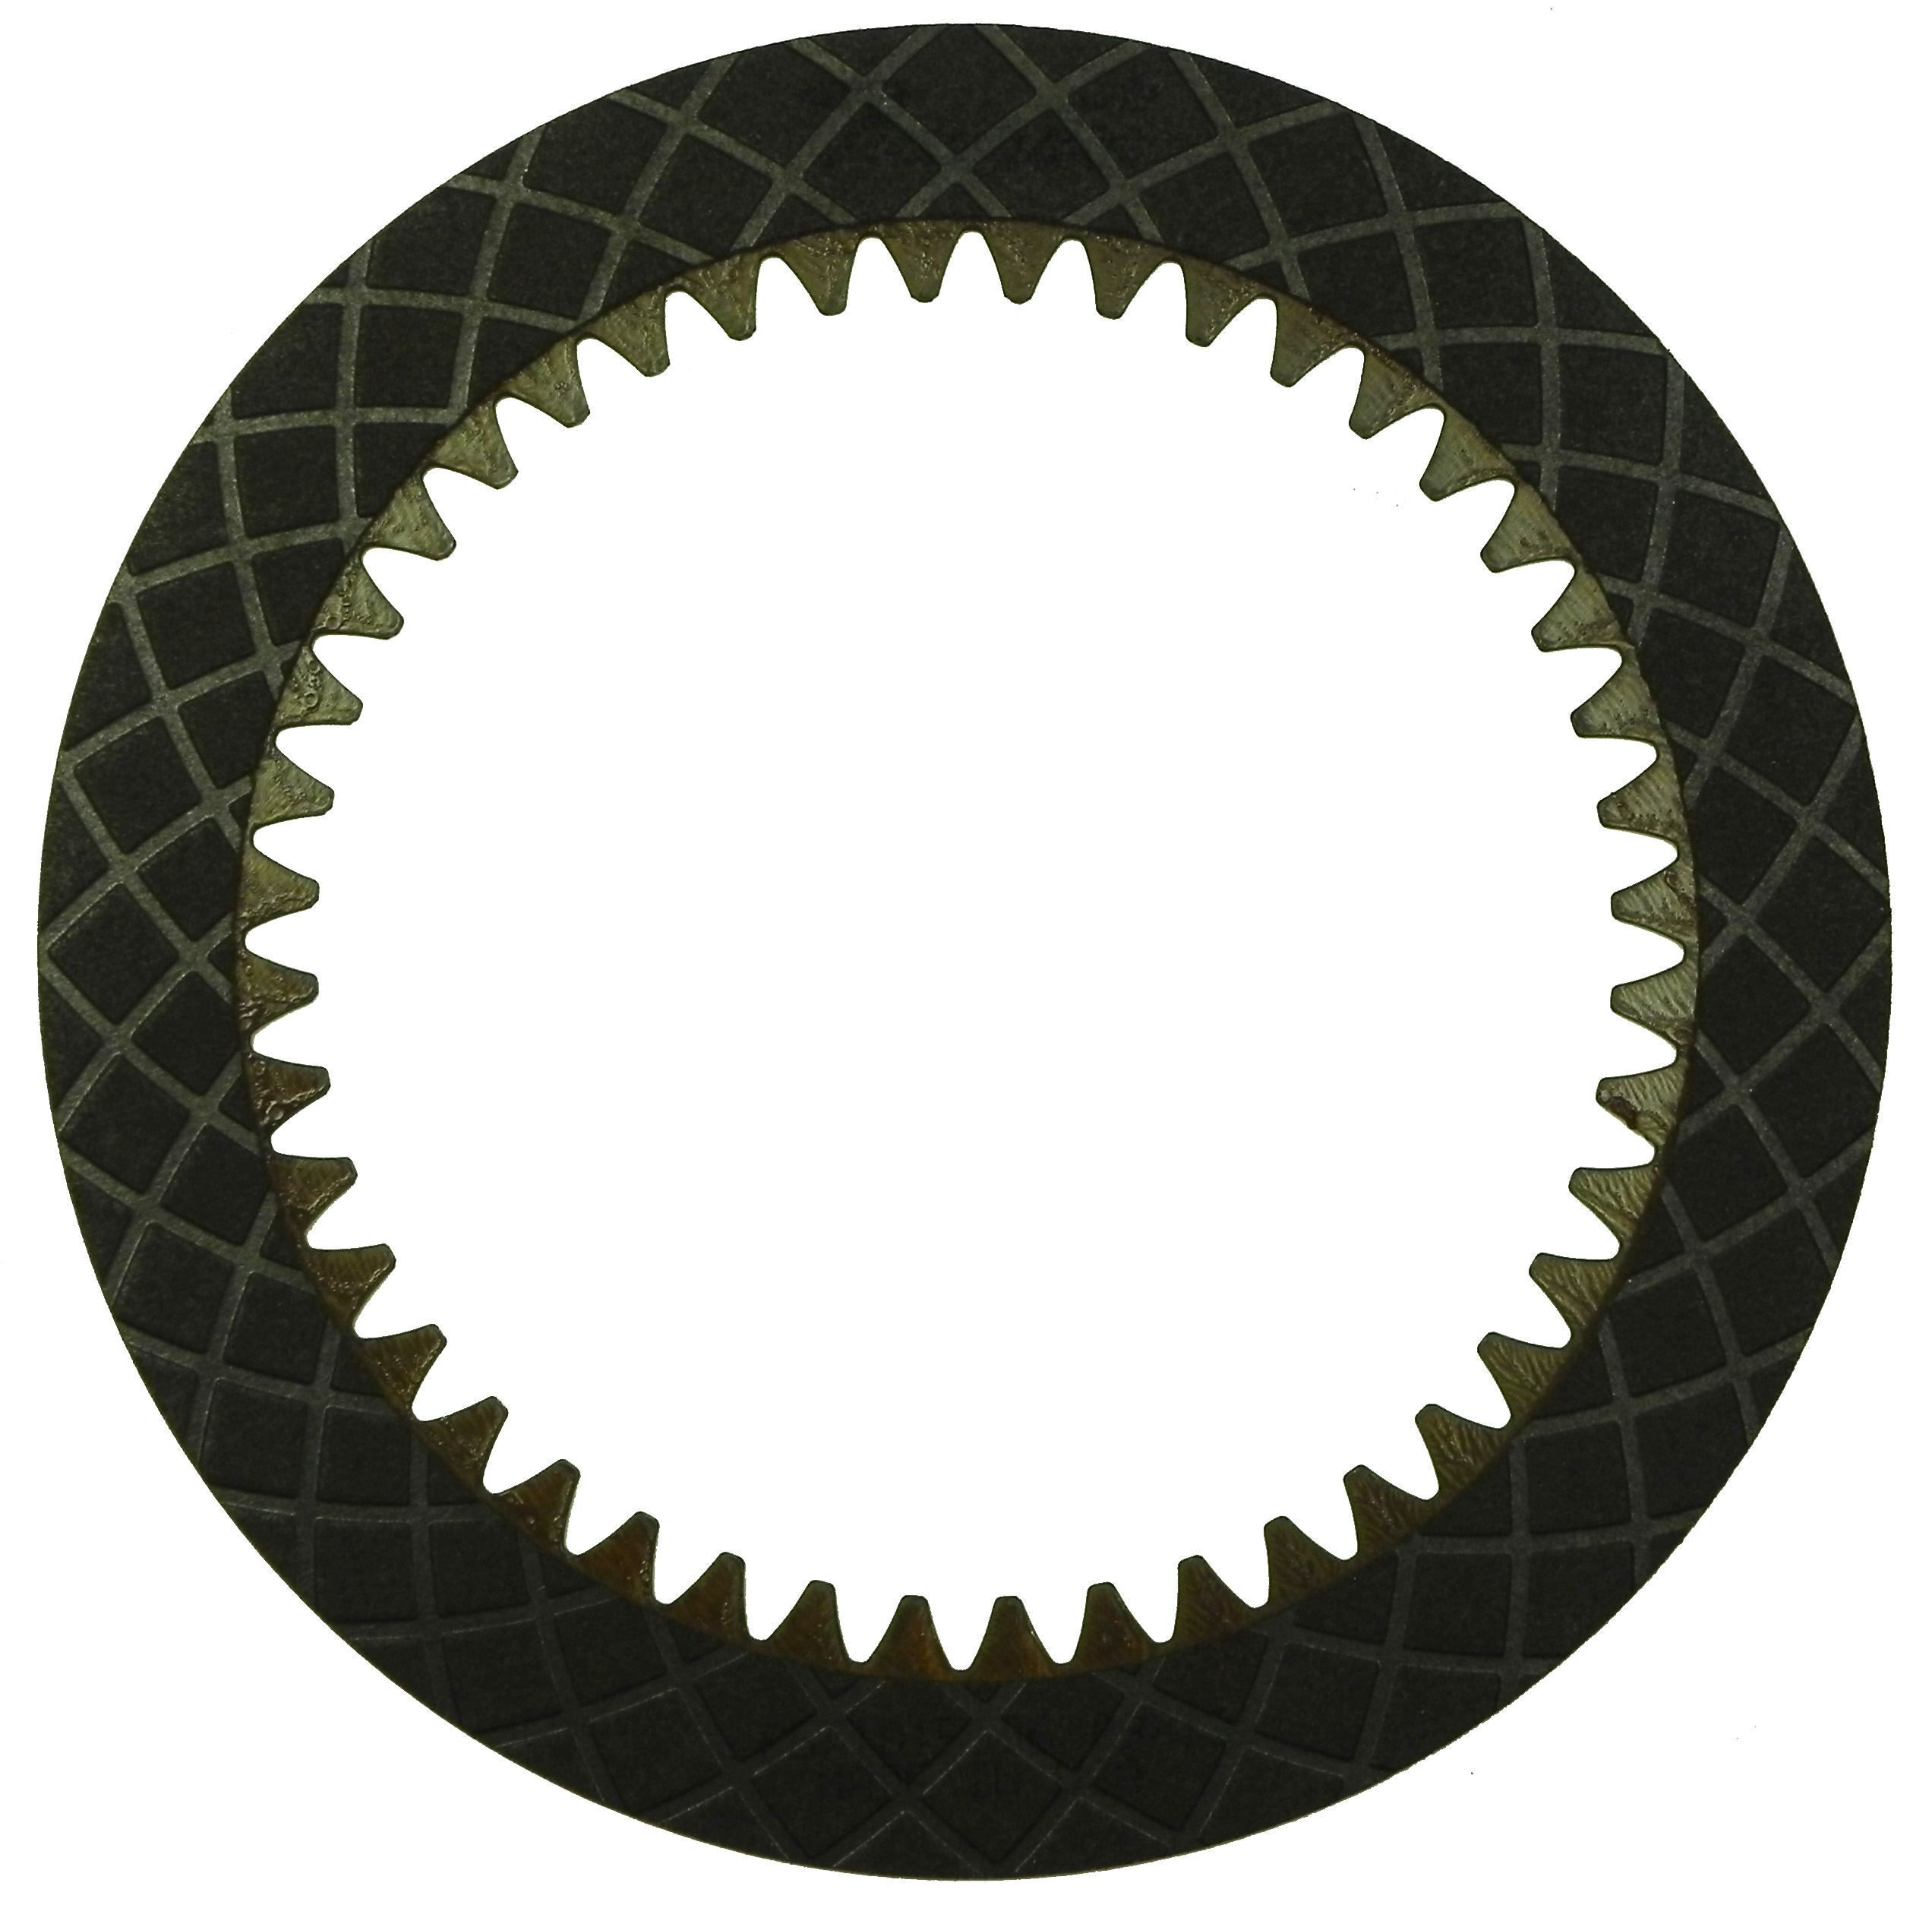 R571815 | 1990-ON Friction Clutch Plate GPX 1st, 2nd, 3rd, 4th GPX